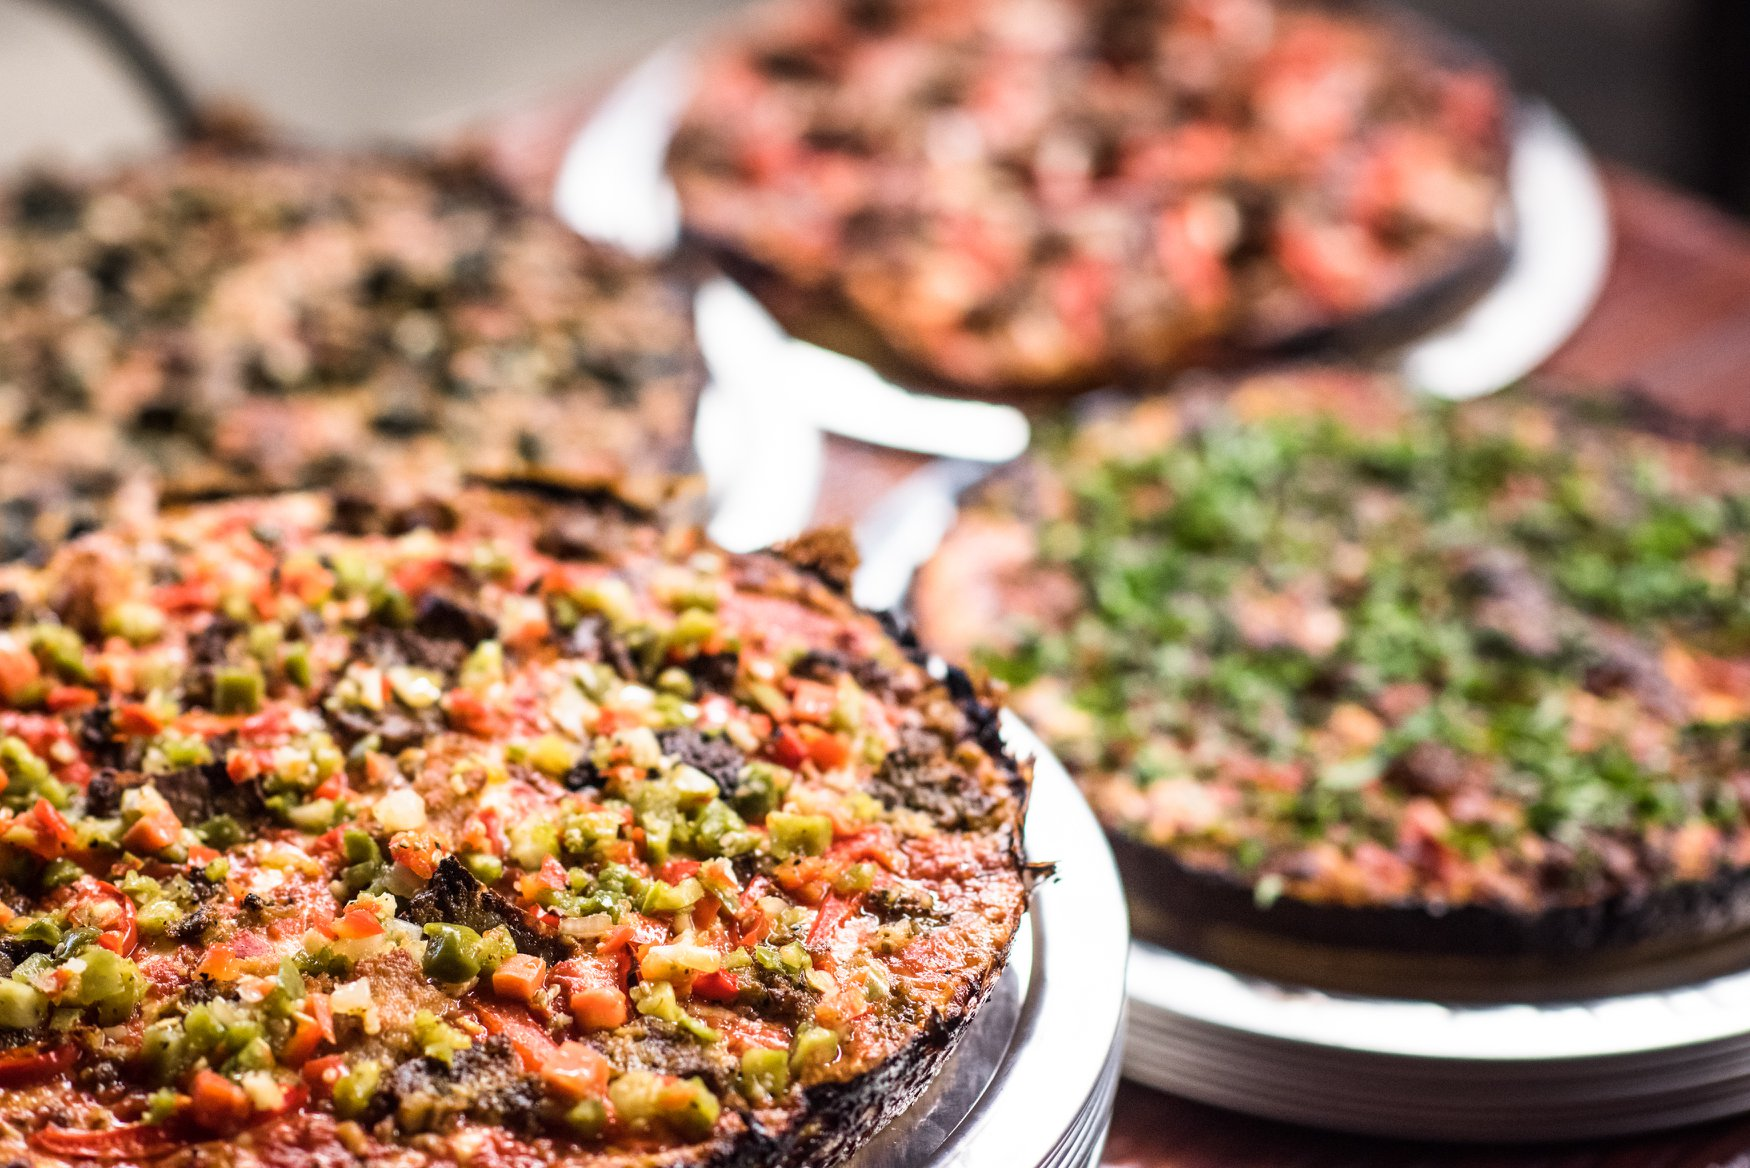 A selection of pizzas with various toppings at Windy City Pie